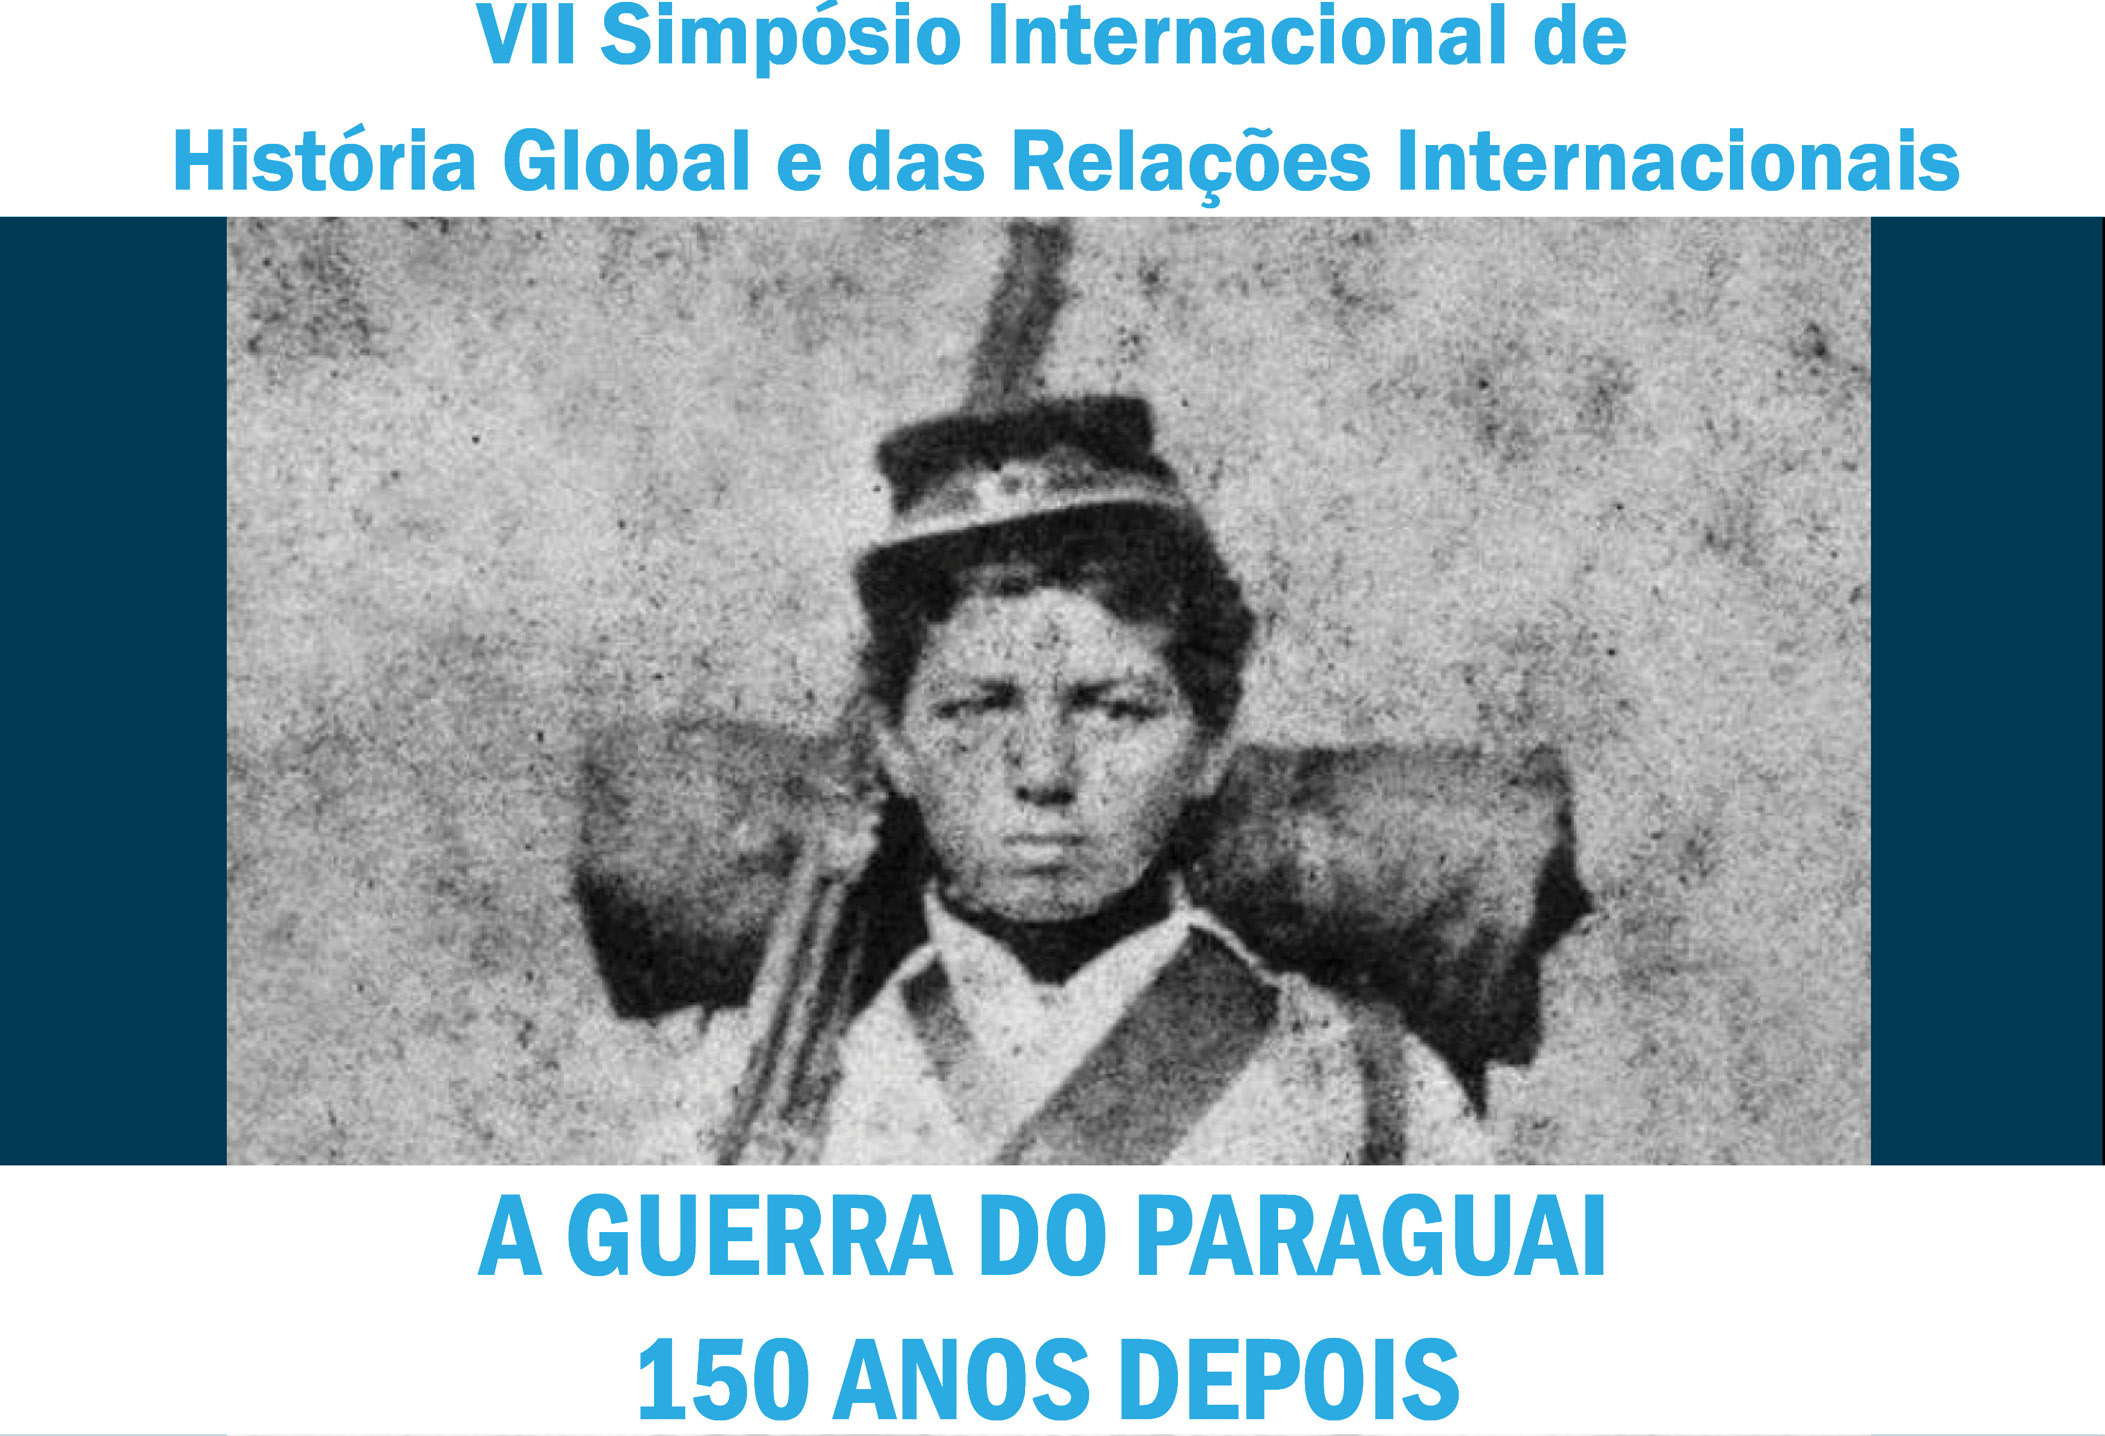 Guerra do Paraguai é tema do VII Simpósio Internacional de História Global